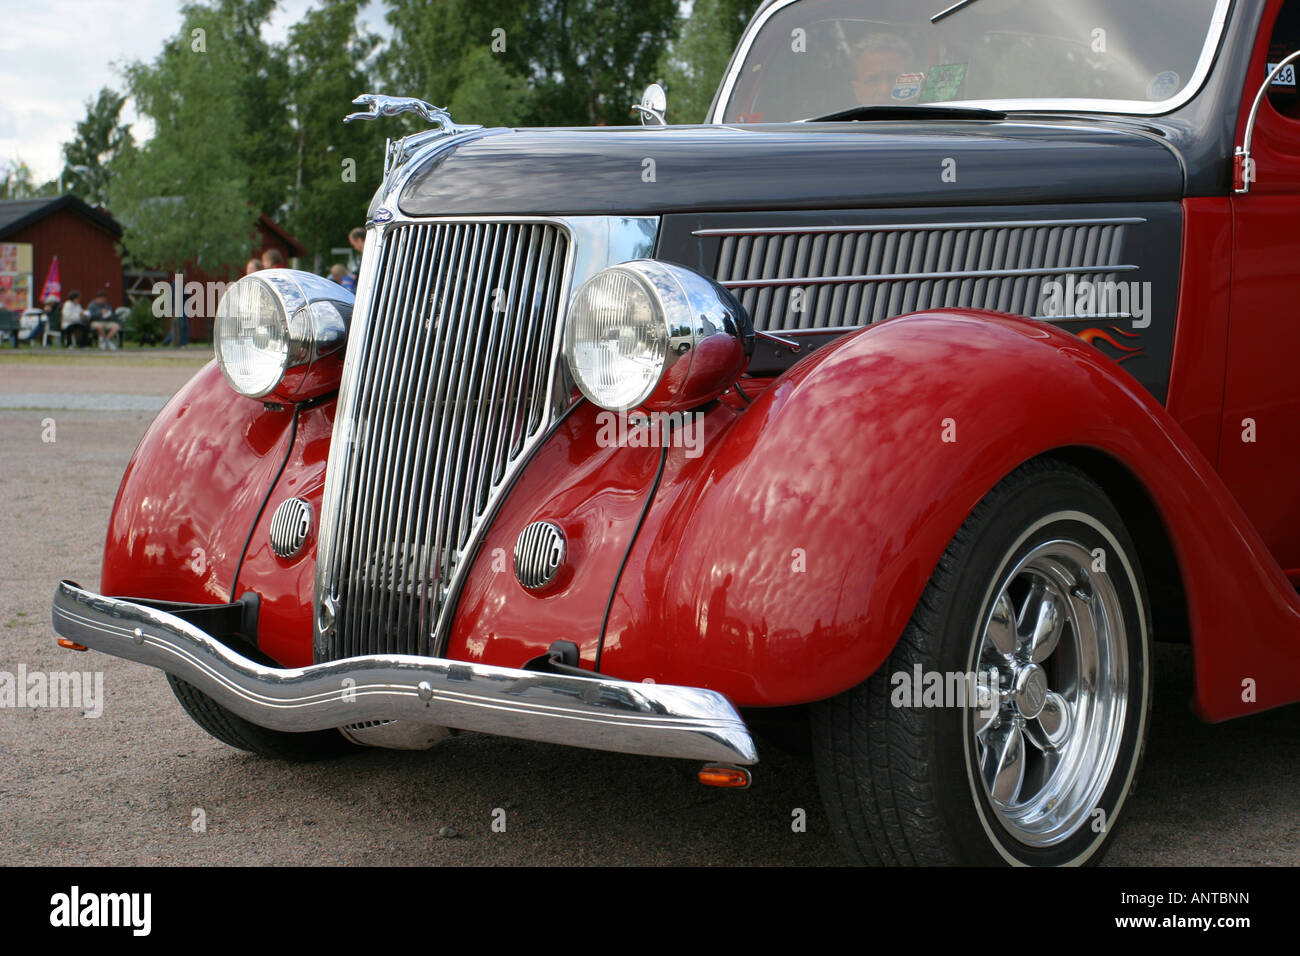 Old Hotrod with crome rim Stock Photo, Royalty Free Image: 15596144 ...